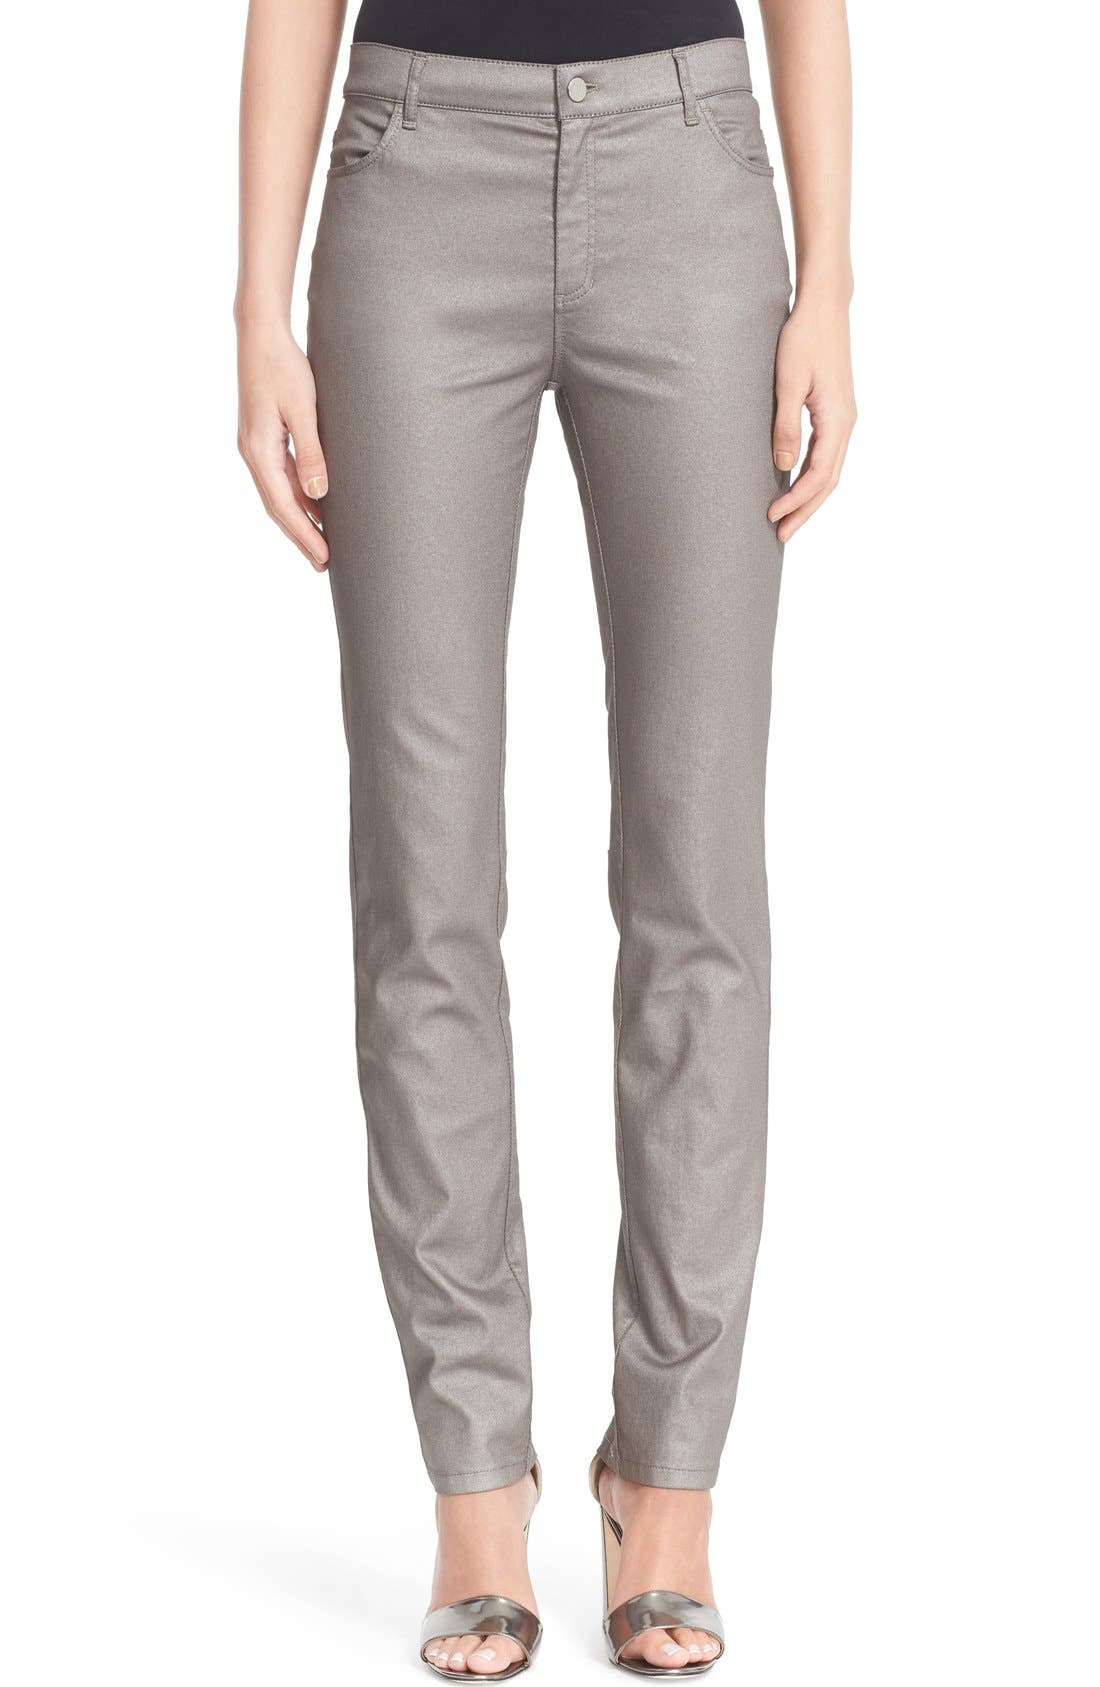 LAFAYETTE 148 NEW YORK, Curvy Fit Skinny Jeans, Alternate thumbnail 11, color, SILVER